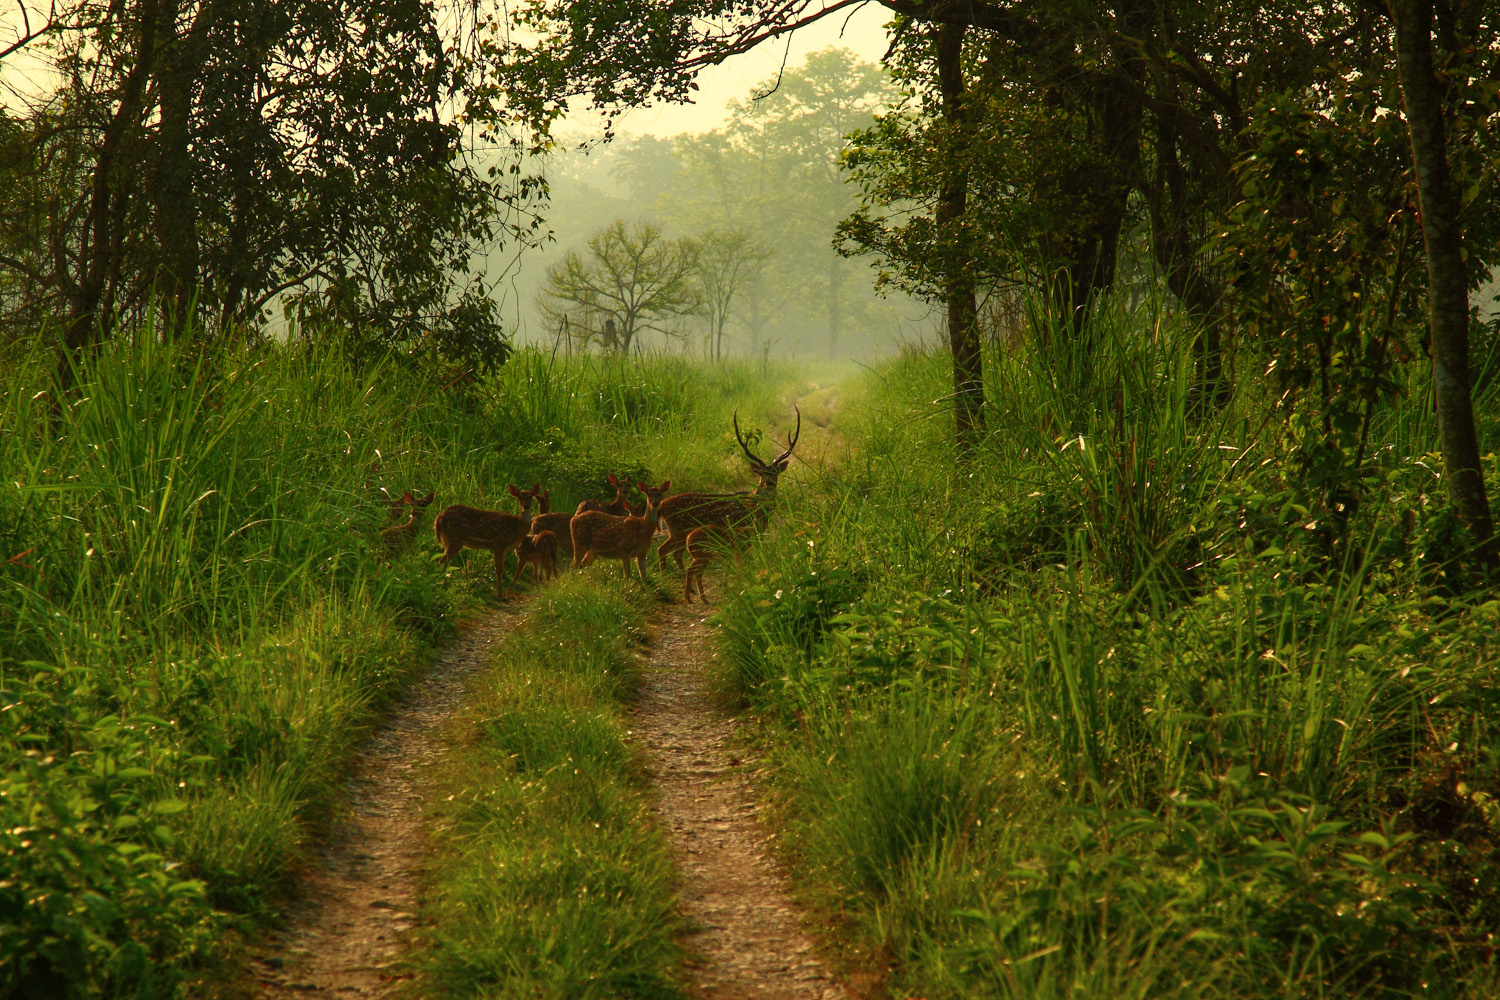 Deer at Chitwan National Park, Nepal